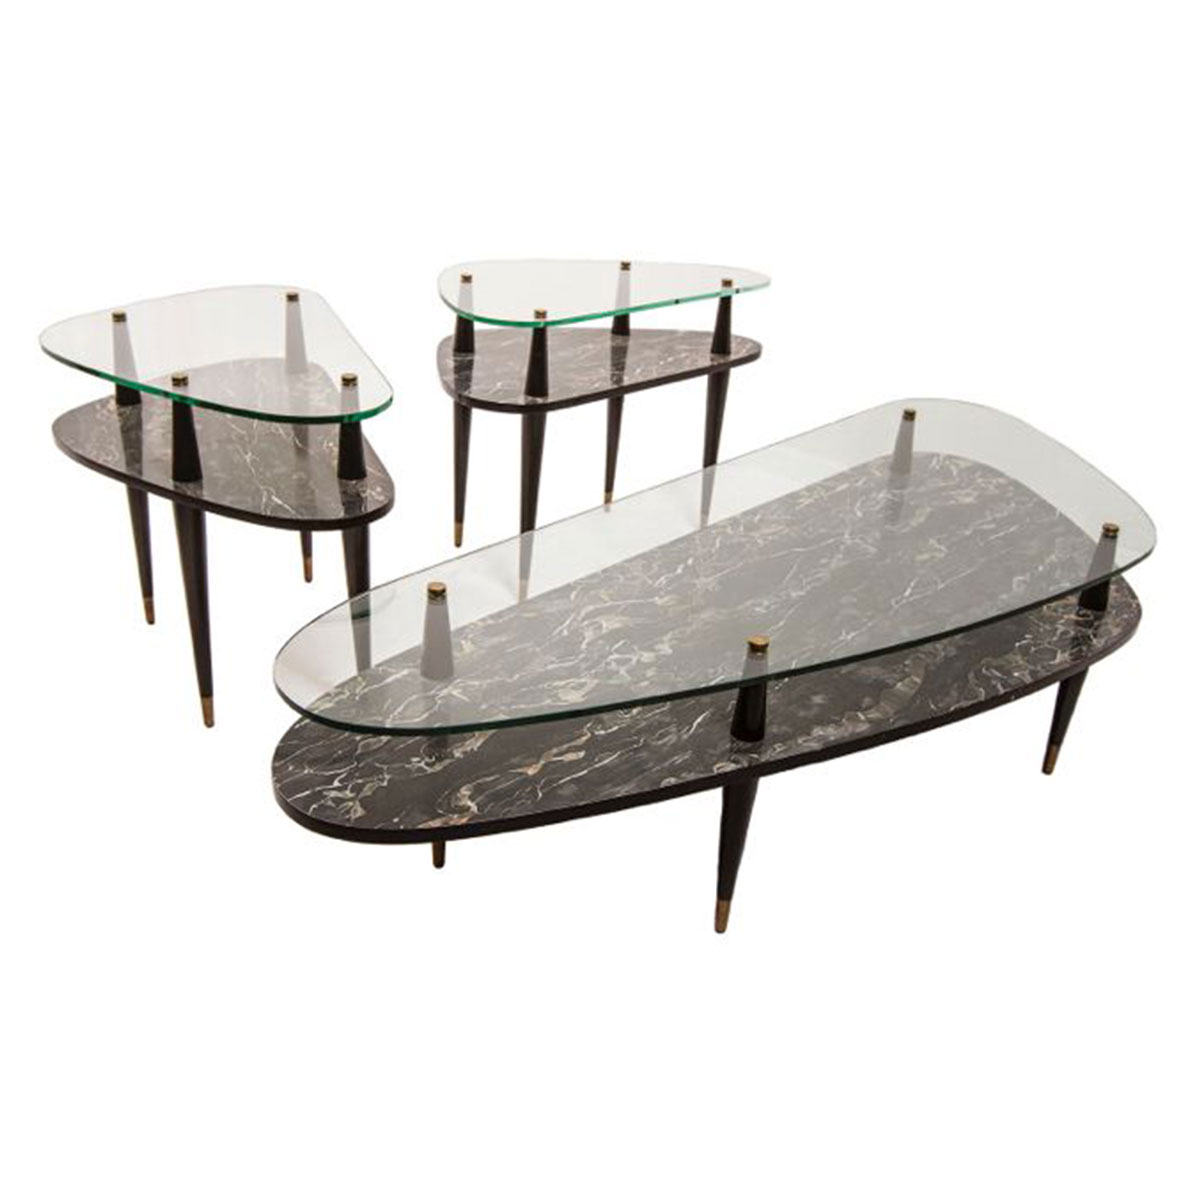 Set of 3 Two-Tier Glass Coffee Table and 2 Side Tables